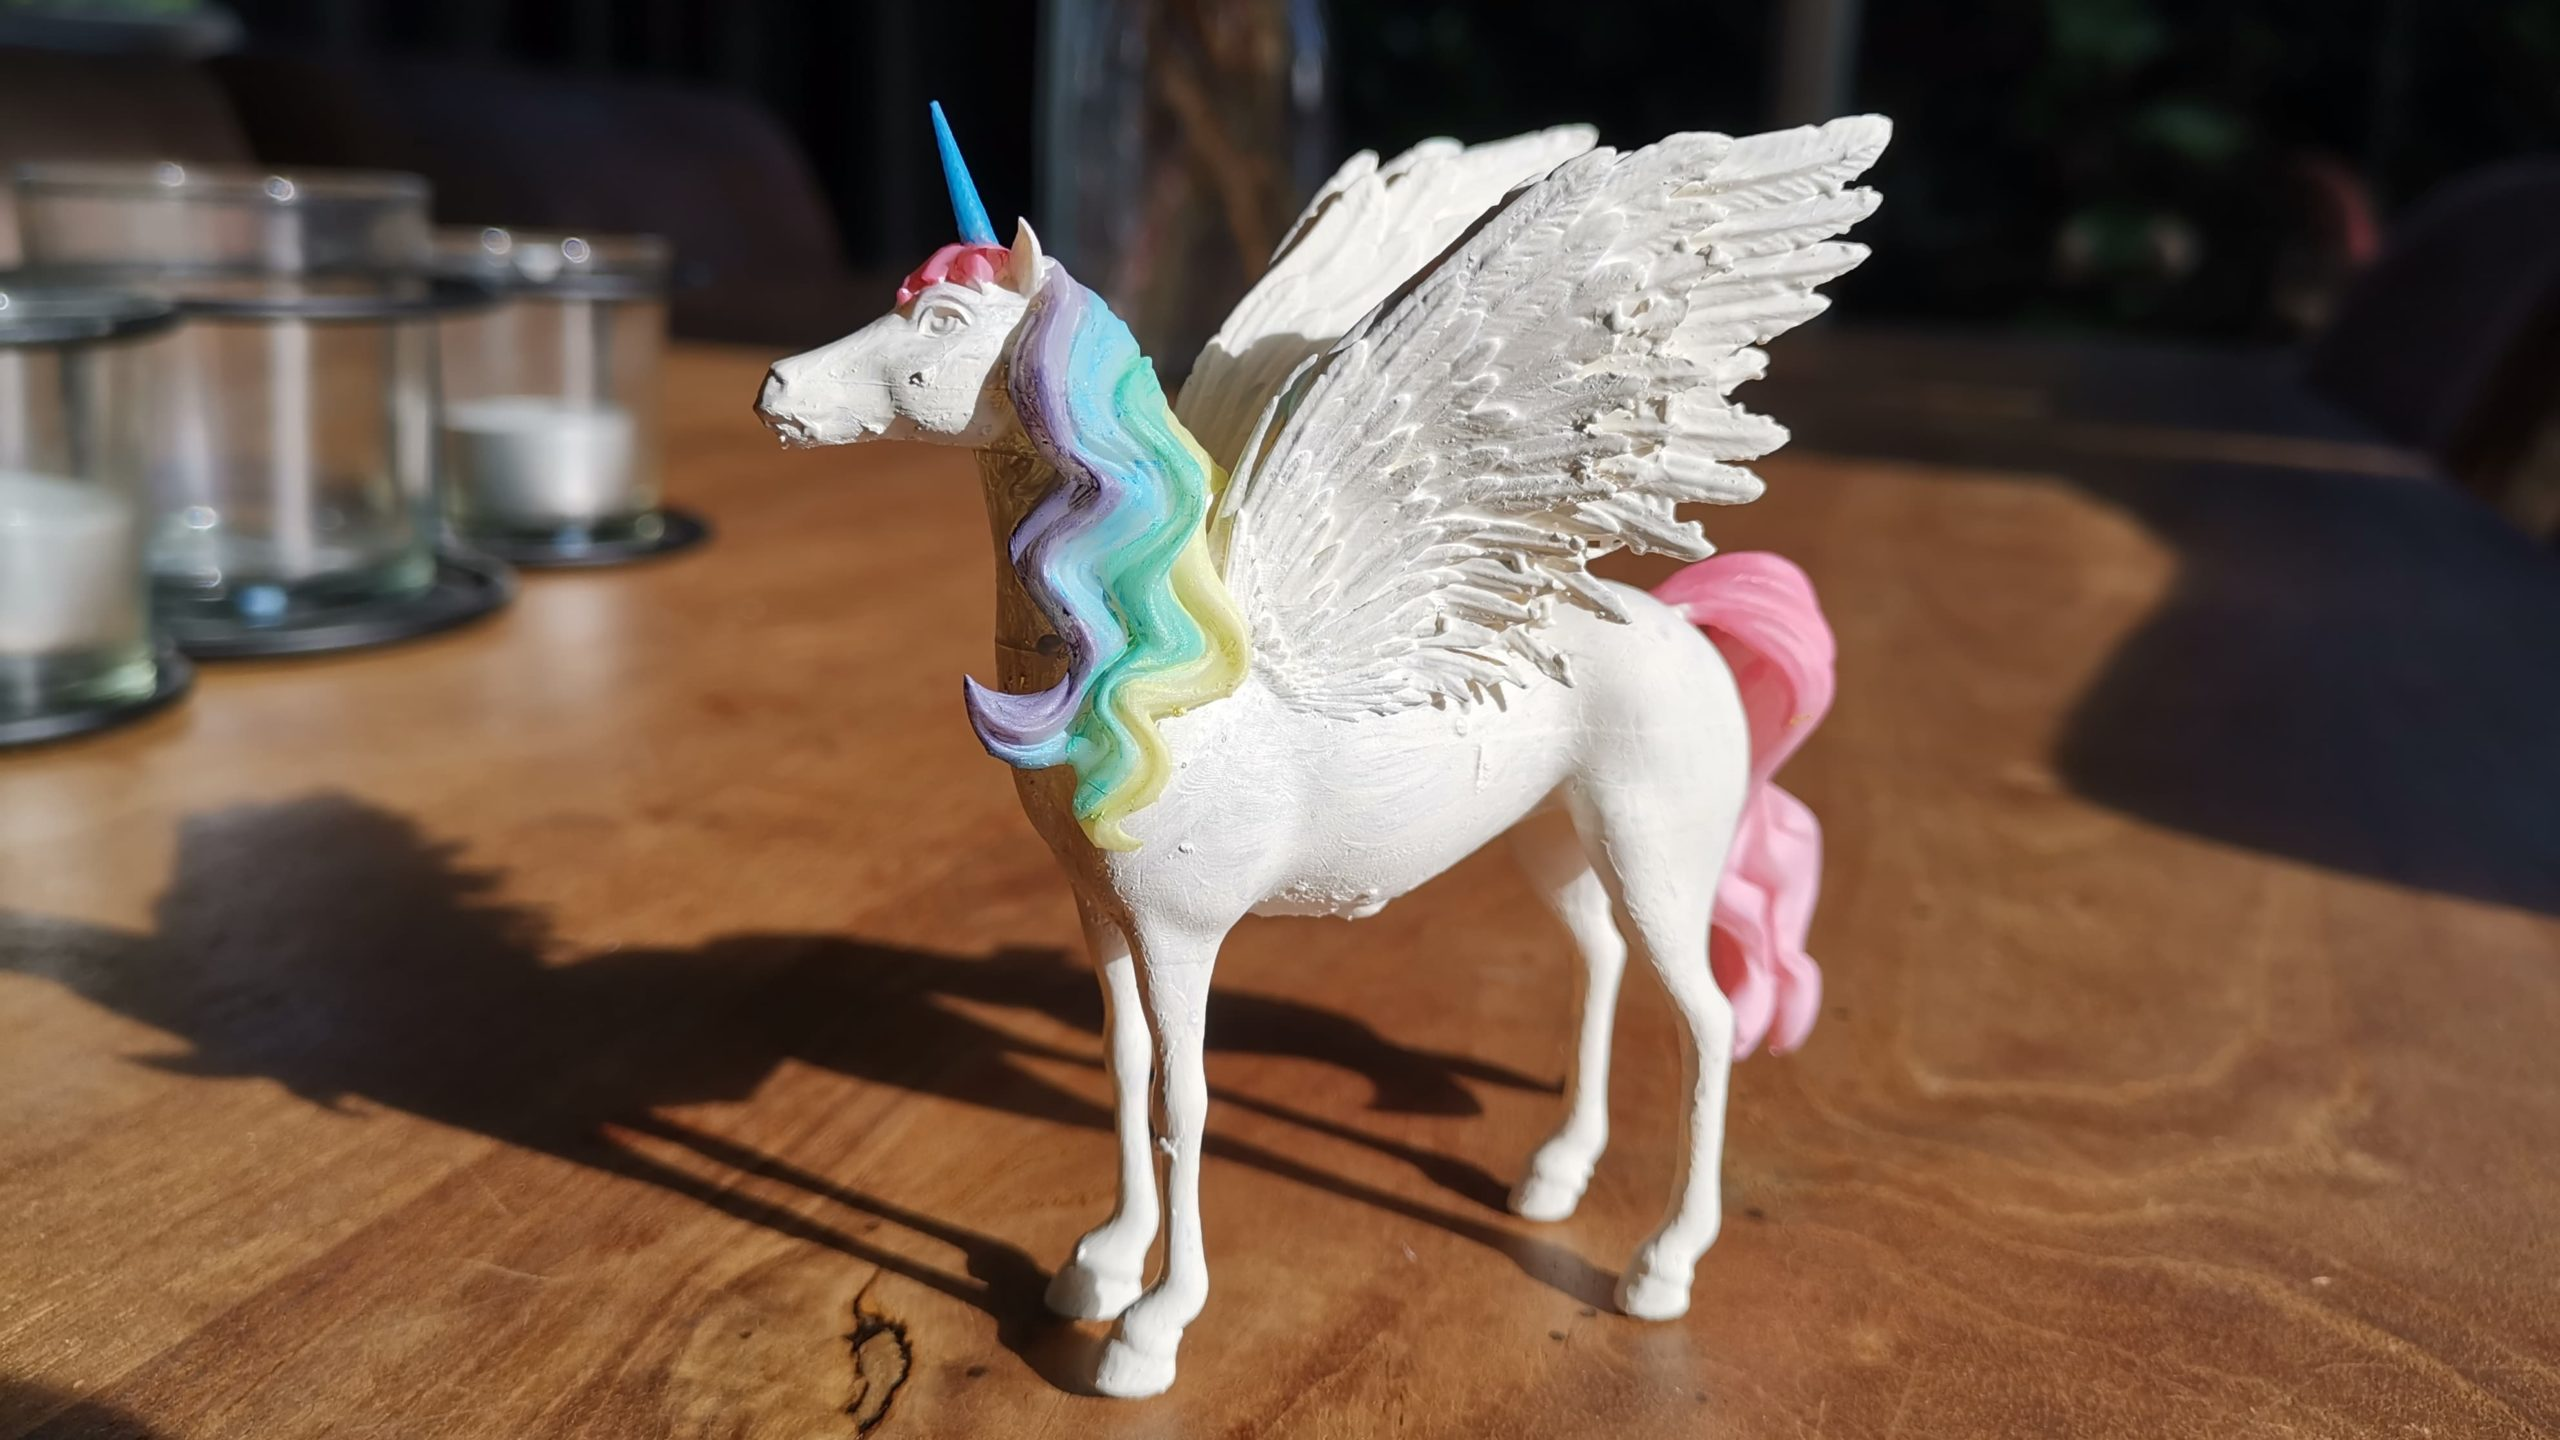 3D Printed Unicorn: 10 Mythical Models to 3D Print | All3DP